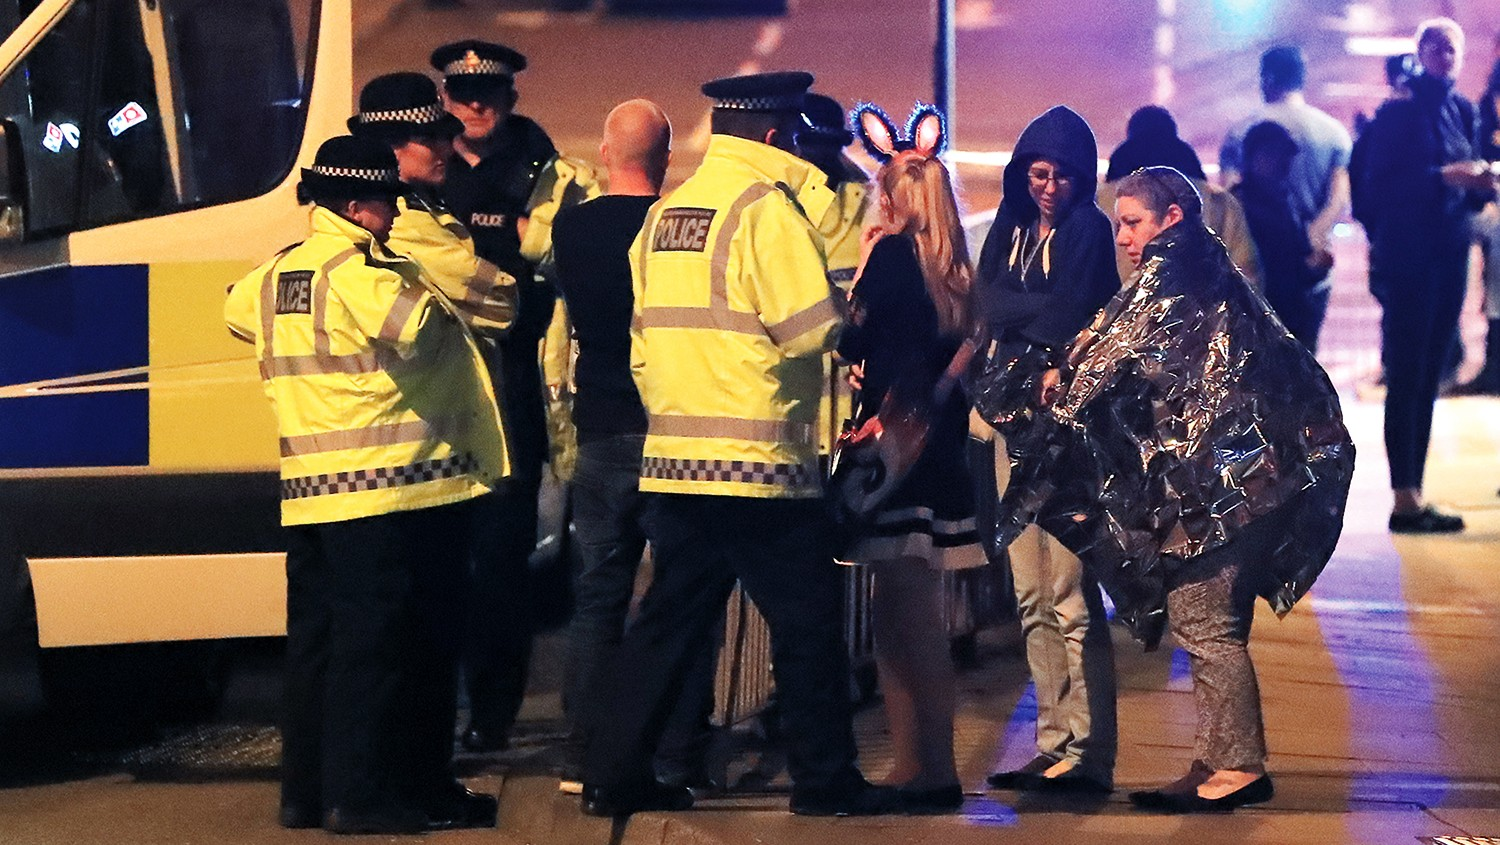 Emergency services at Manchester Arena after reports of an explosion at the venue during an Ariana Grande concert.